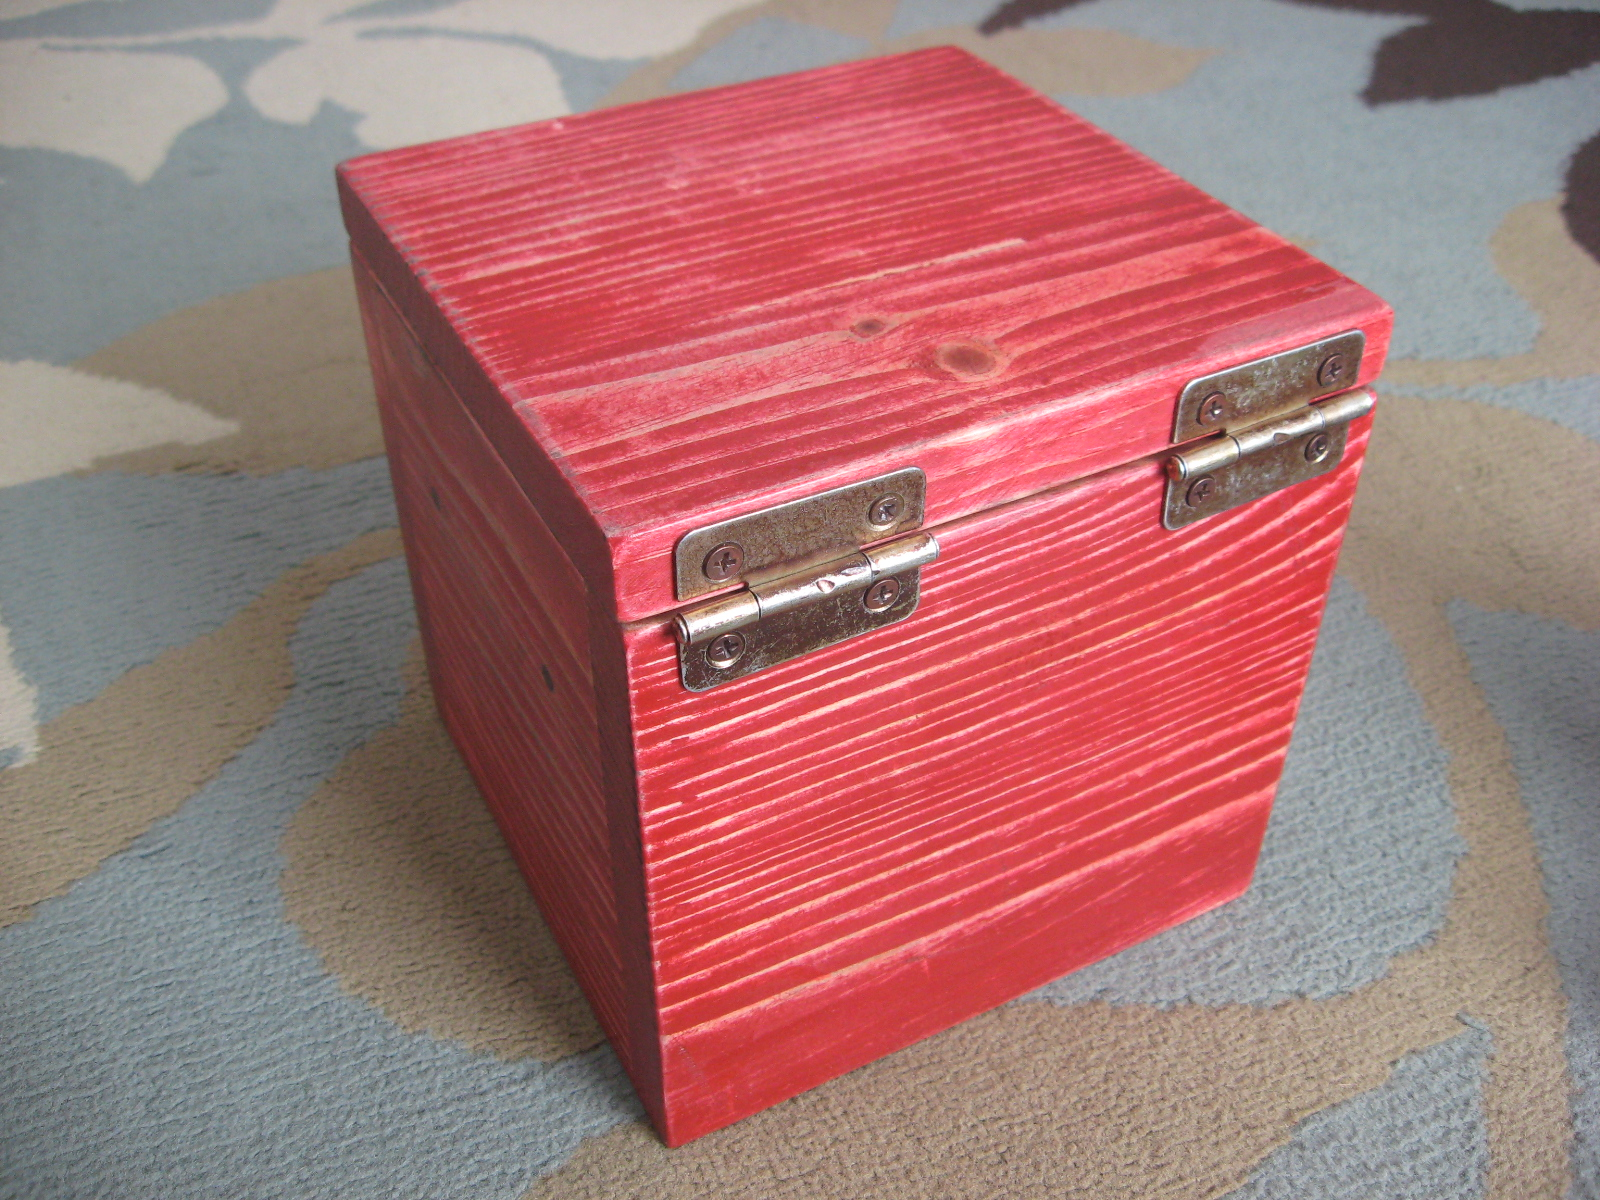 Picture of Wooden Puzzle: Six Blocks in a Box